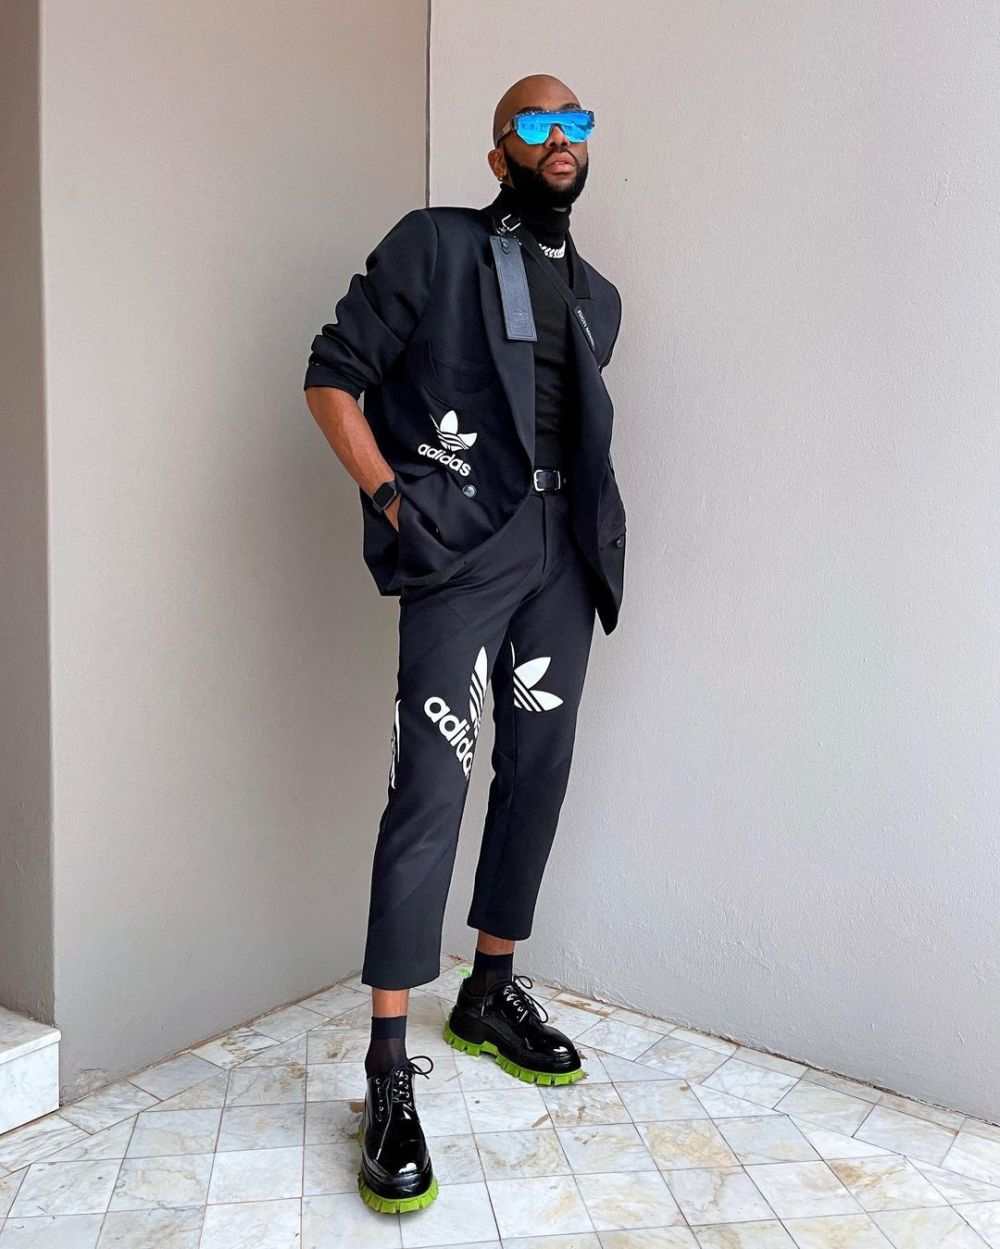 male-celebrities-africa-fashion-ultra-hip-style-rave